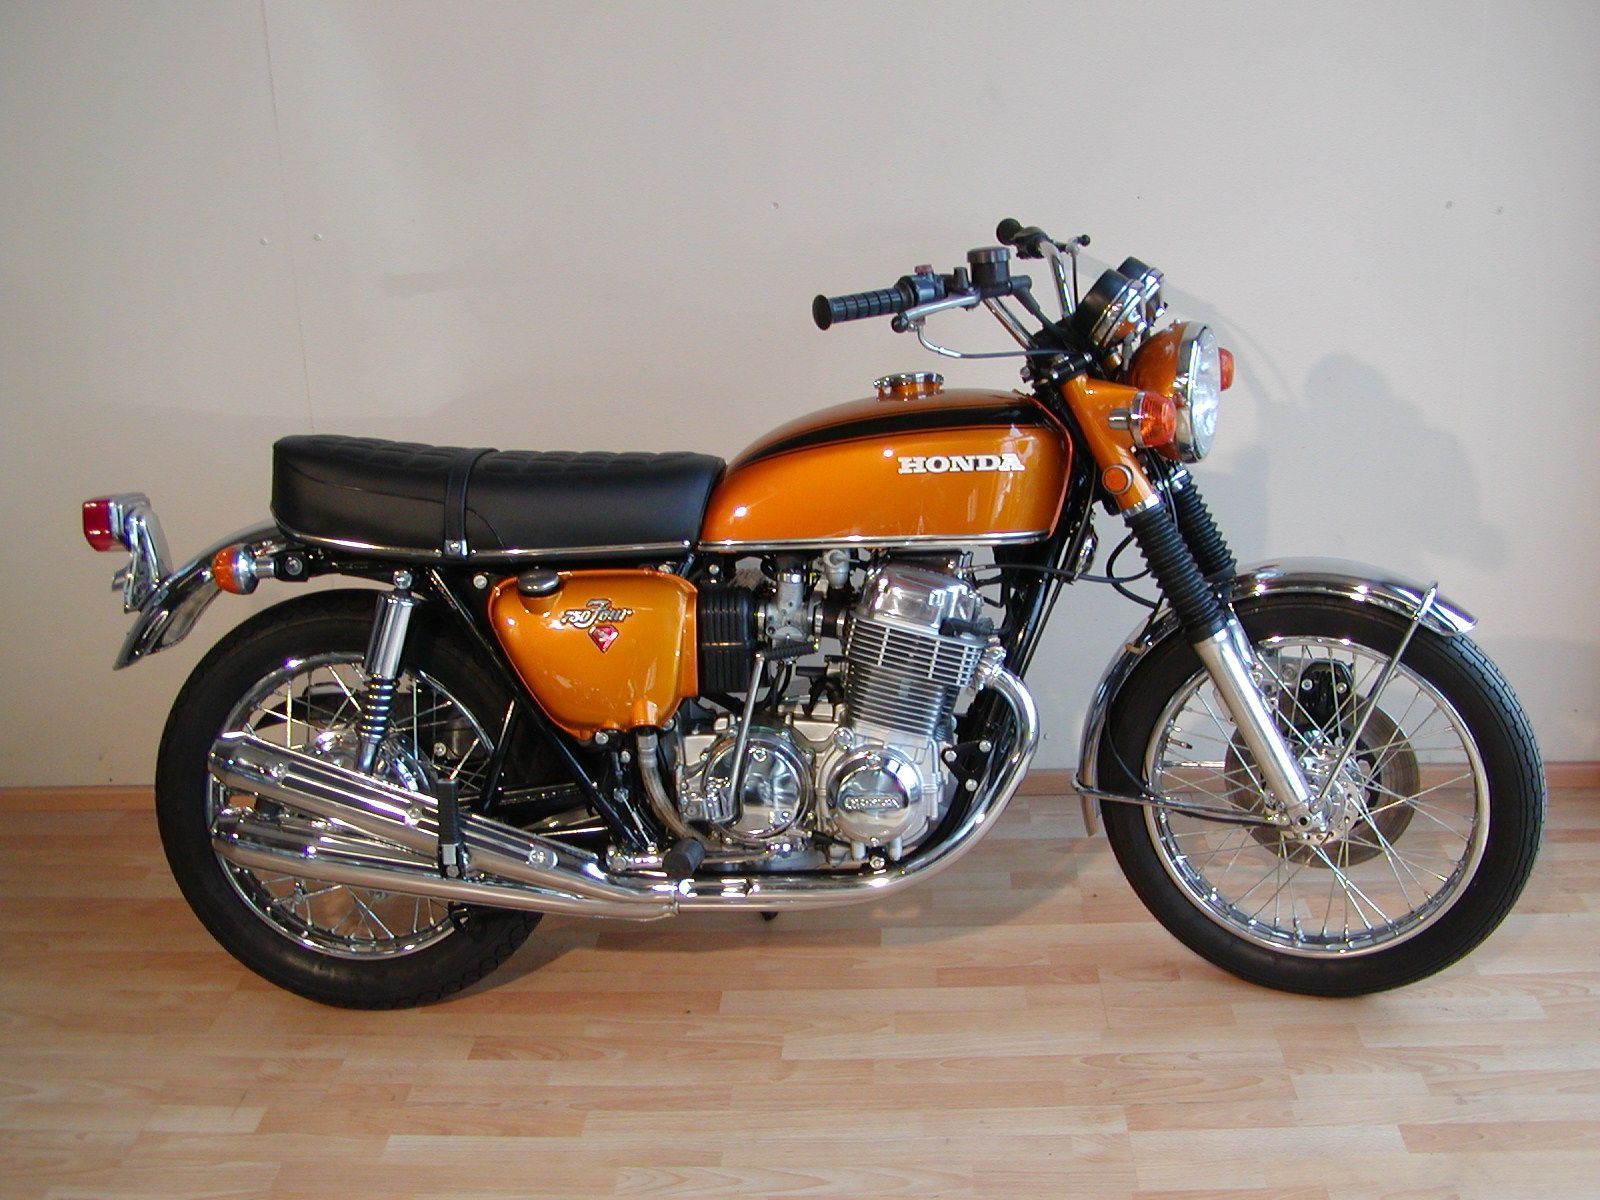 1971 honda cb750 four k1 honda pinterest honda cb750. Black Bedroom Furniture Sets. Home Design Ideas